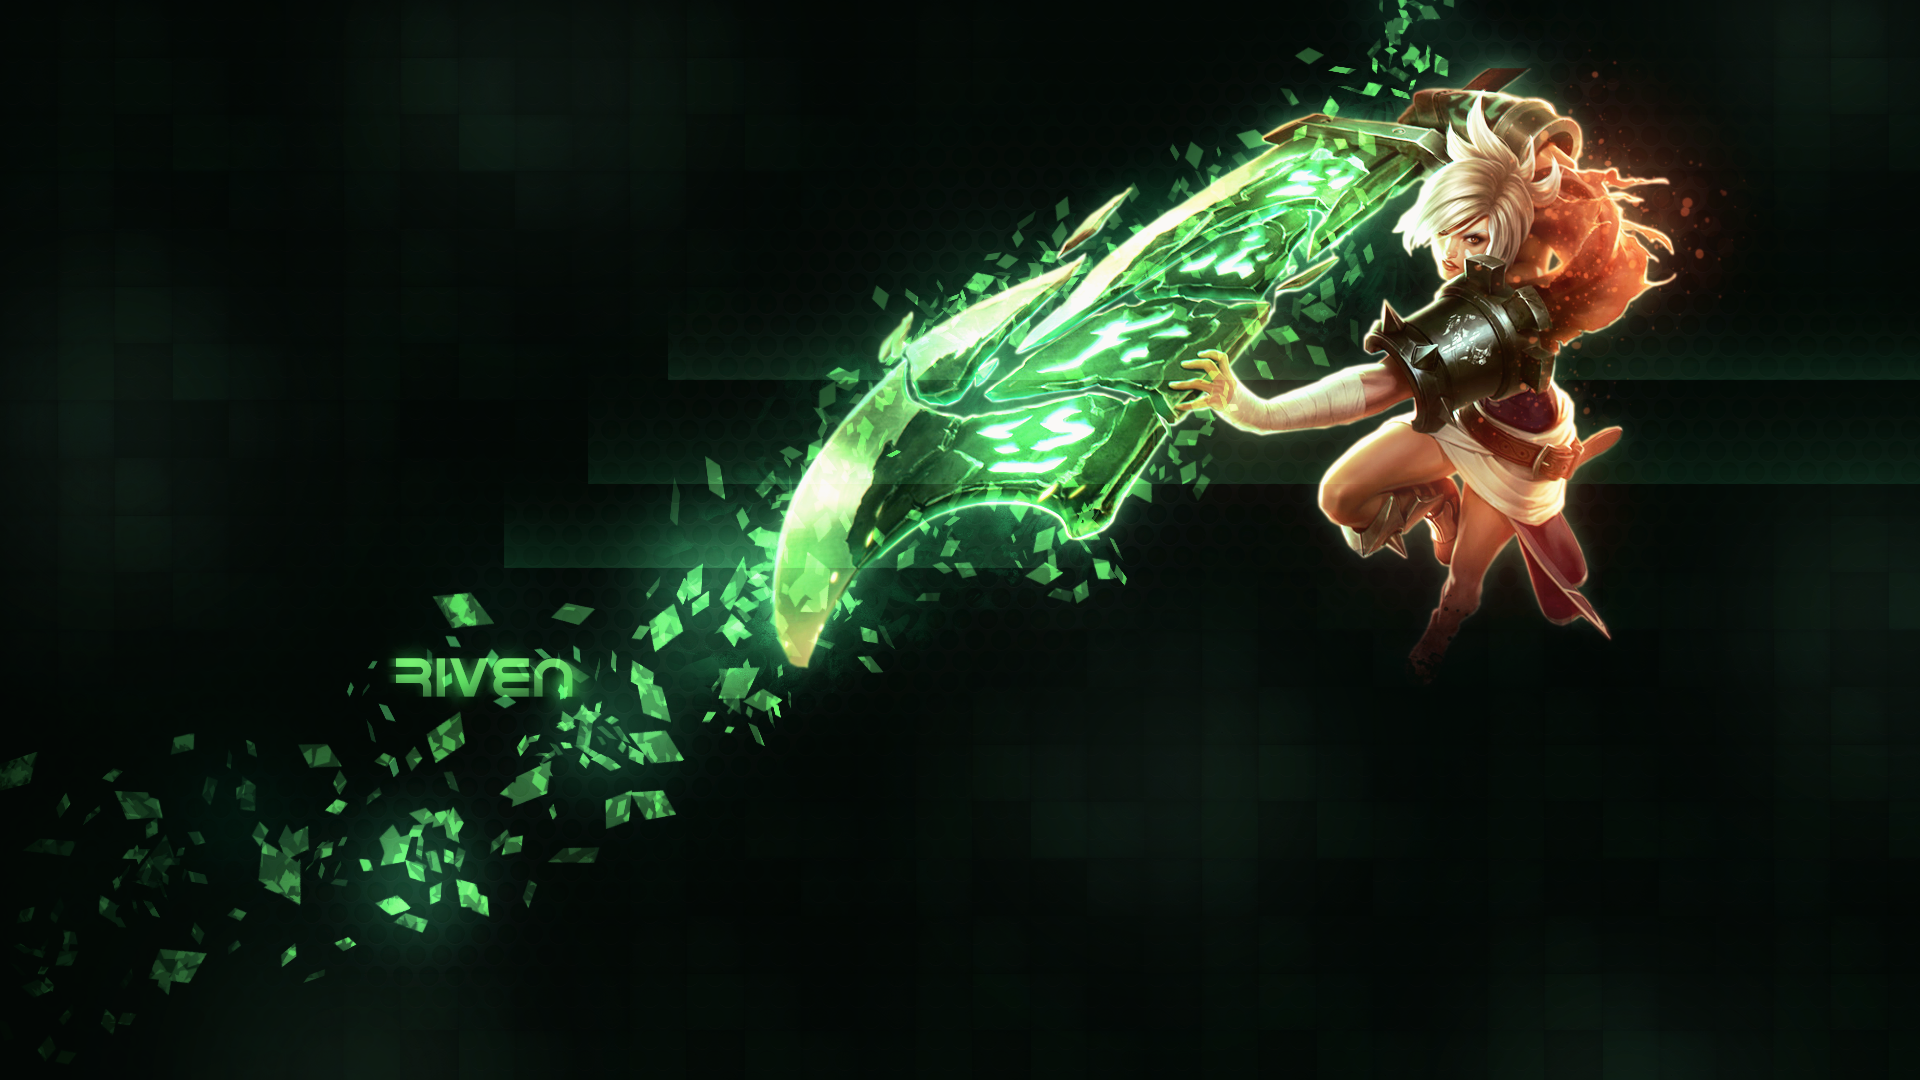 League Of Legends Wallpaper Hd Riven Posted By Sarah Simpson